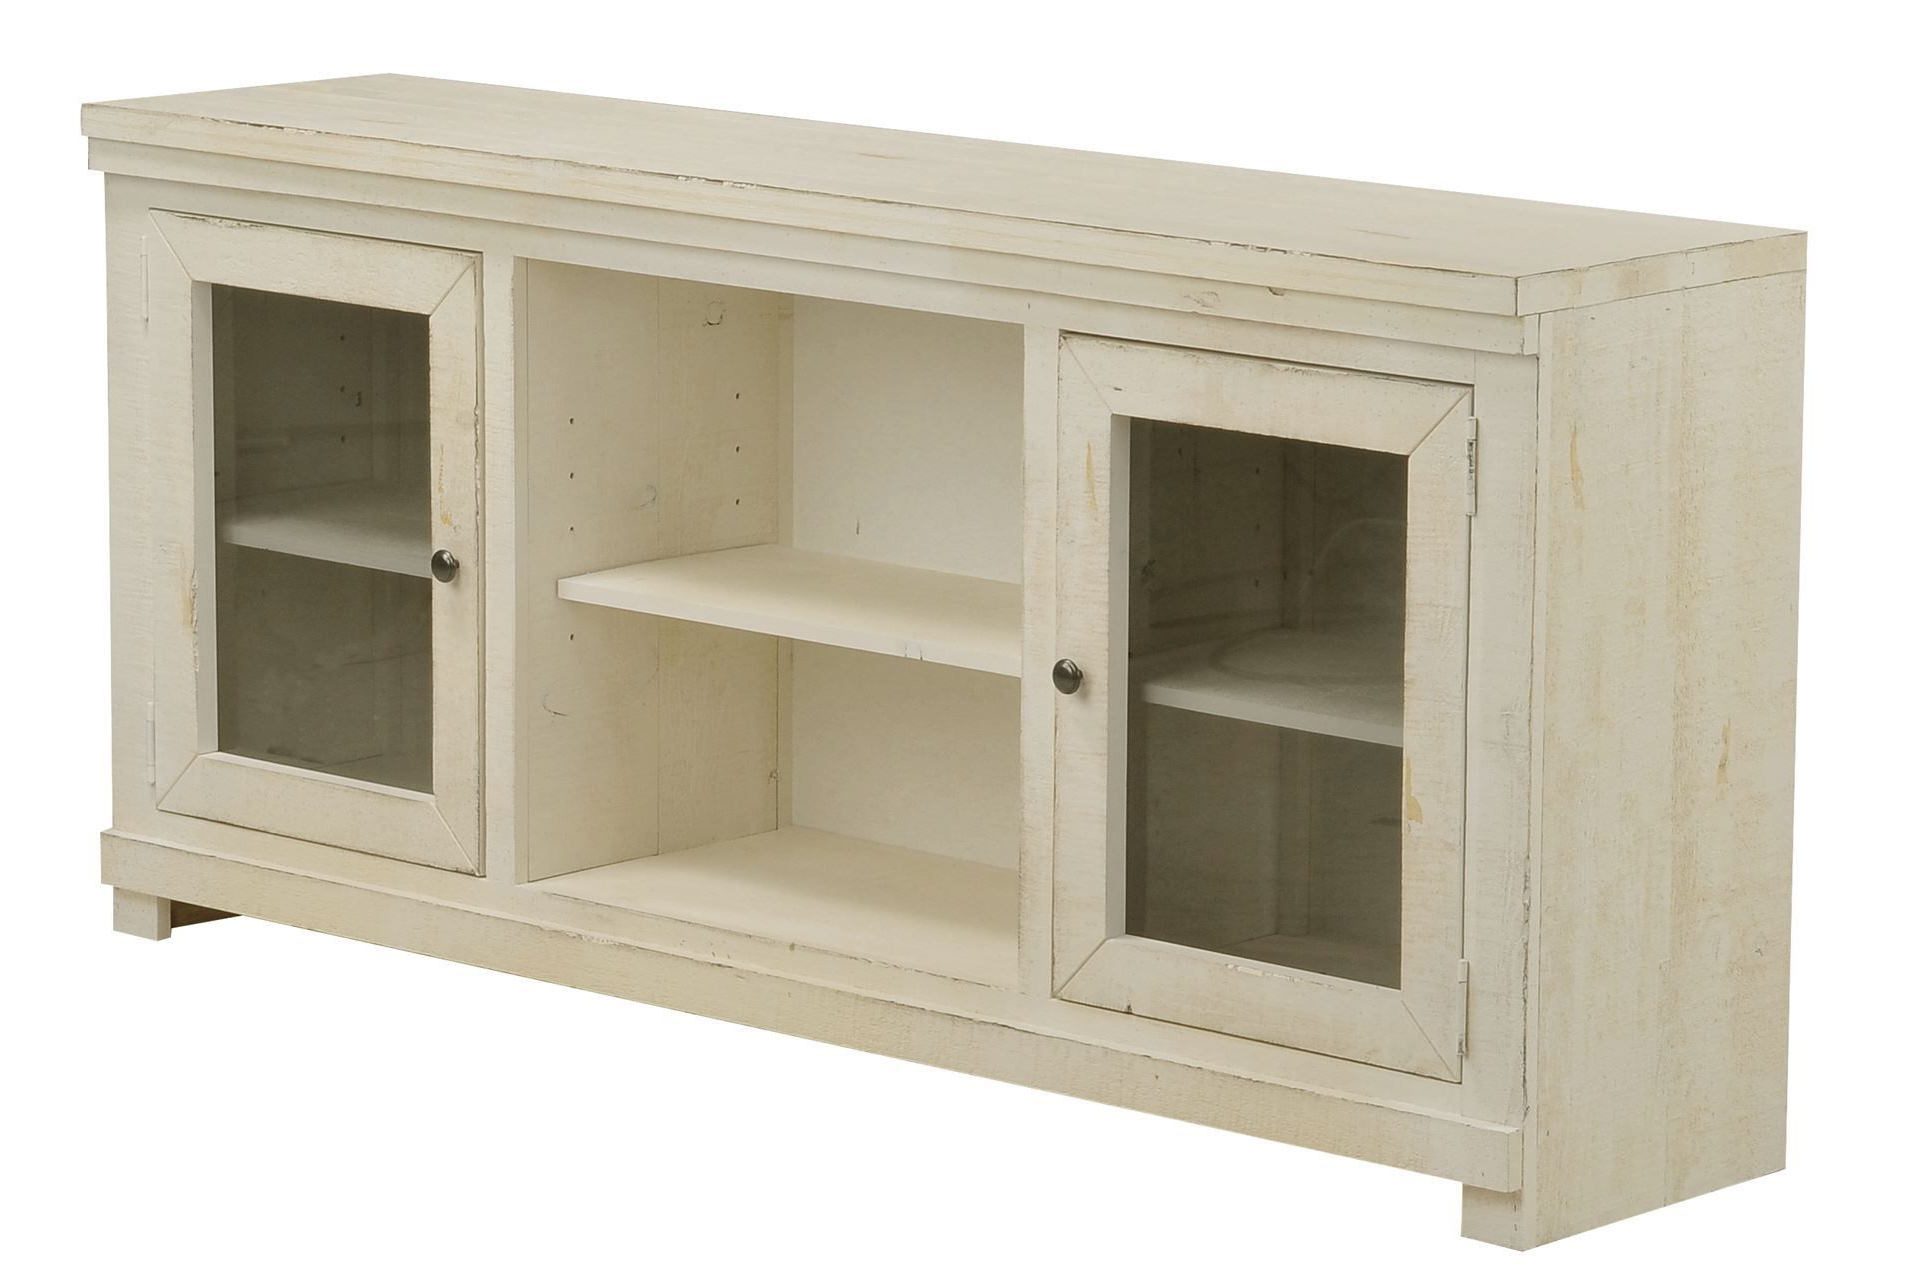 Sinclair White 68 Inch Tv Stand | For The Home | Living Room Designs With Sinclair White 64 Inch Tv Stands (View 6 of 20)